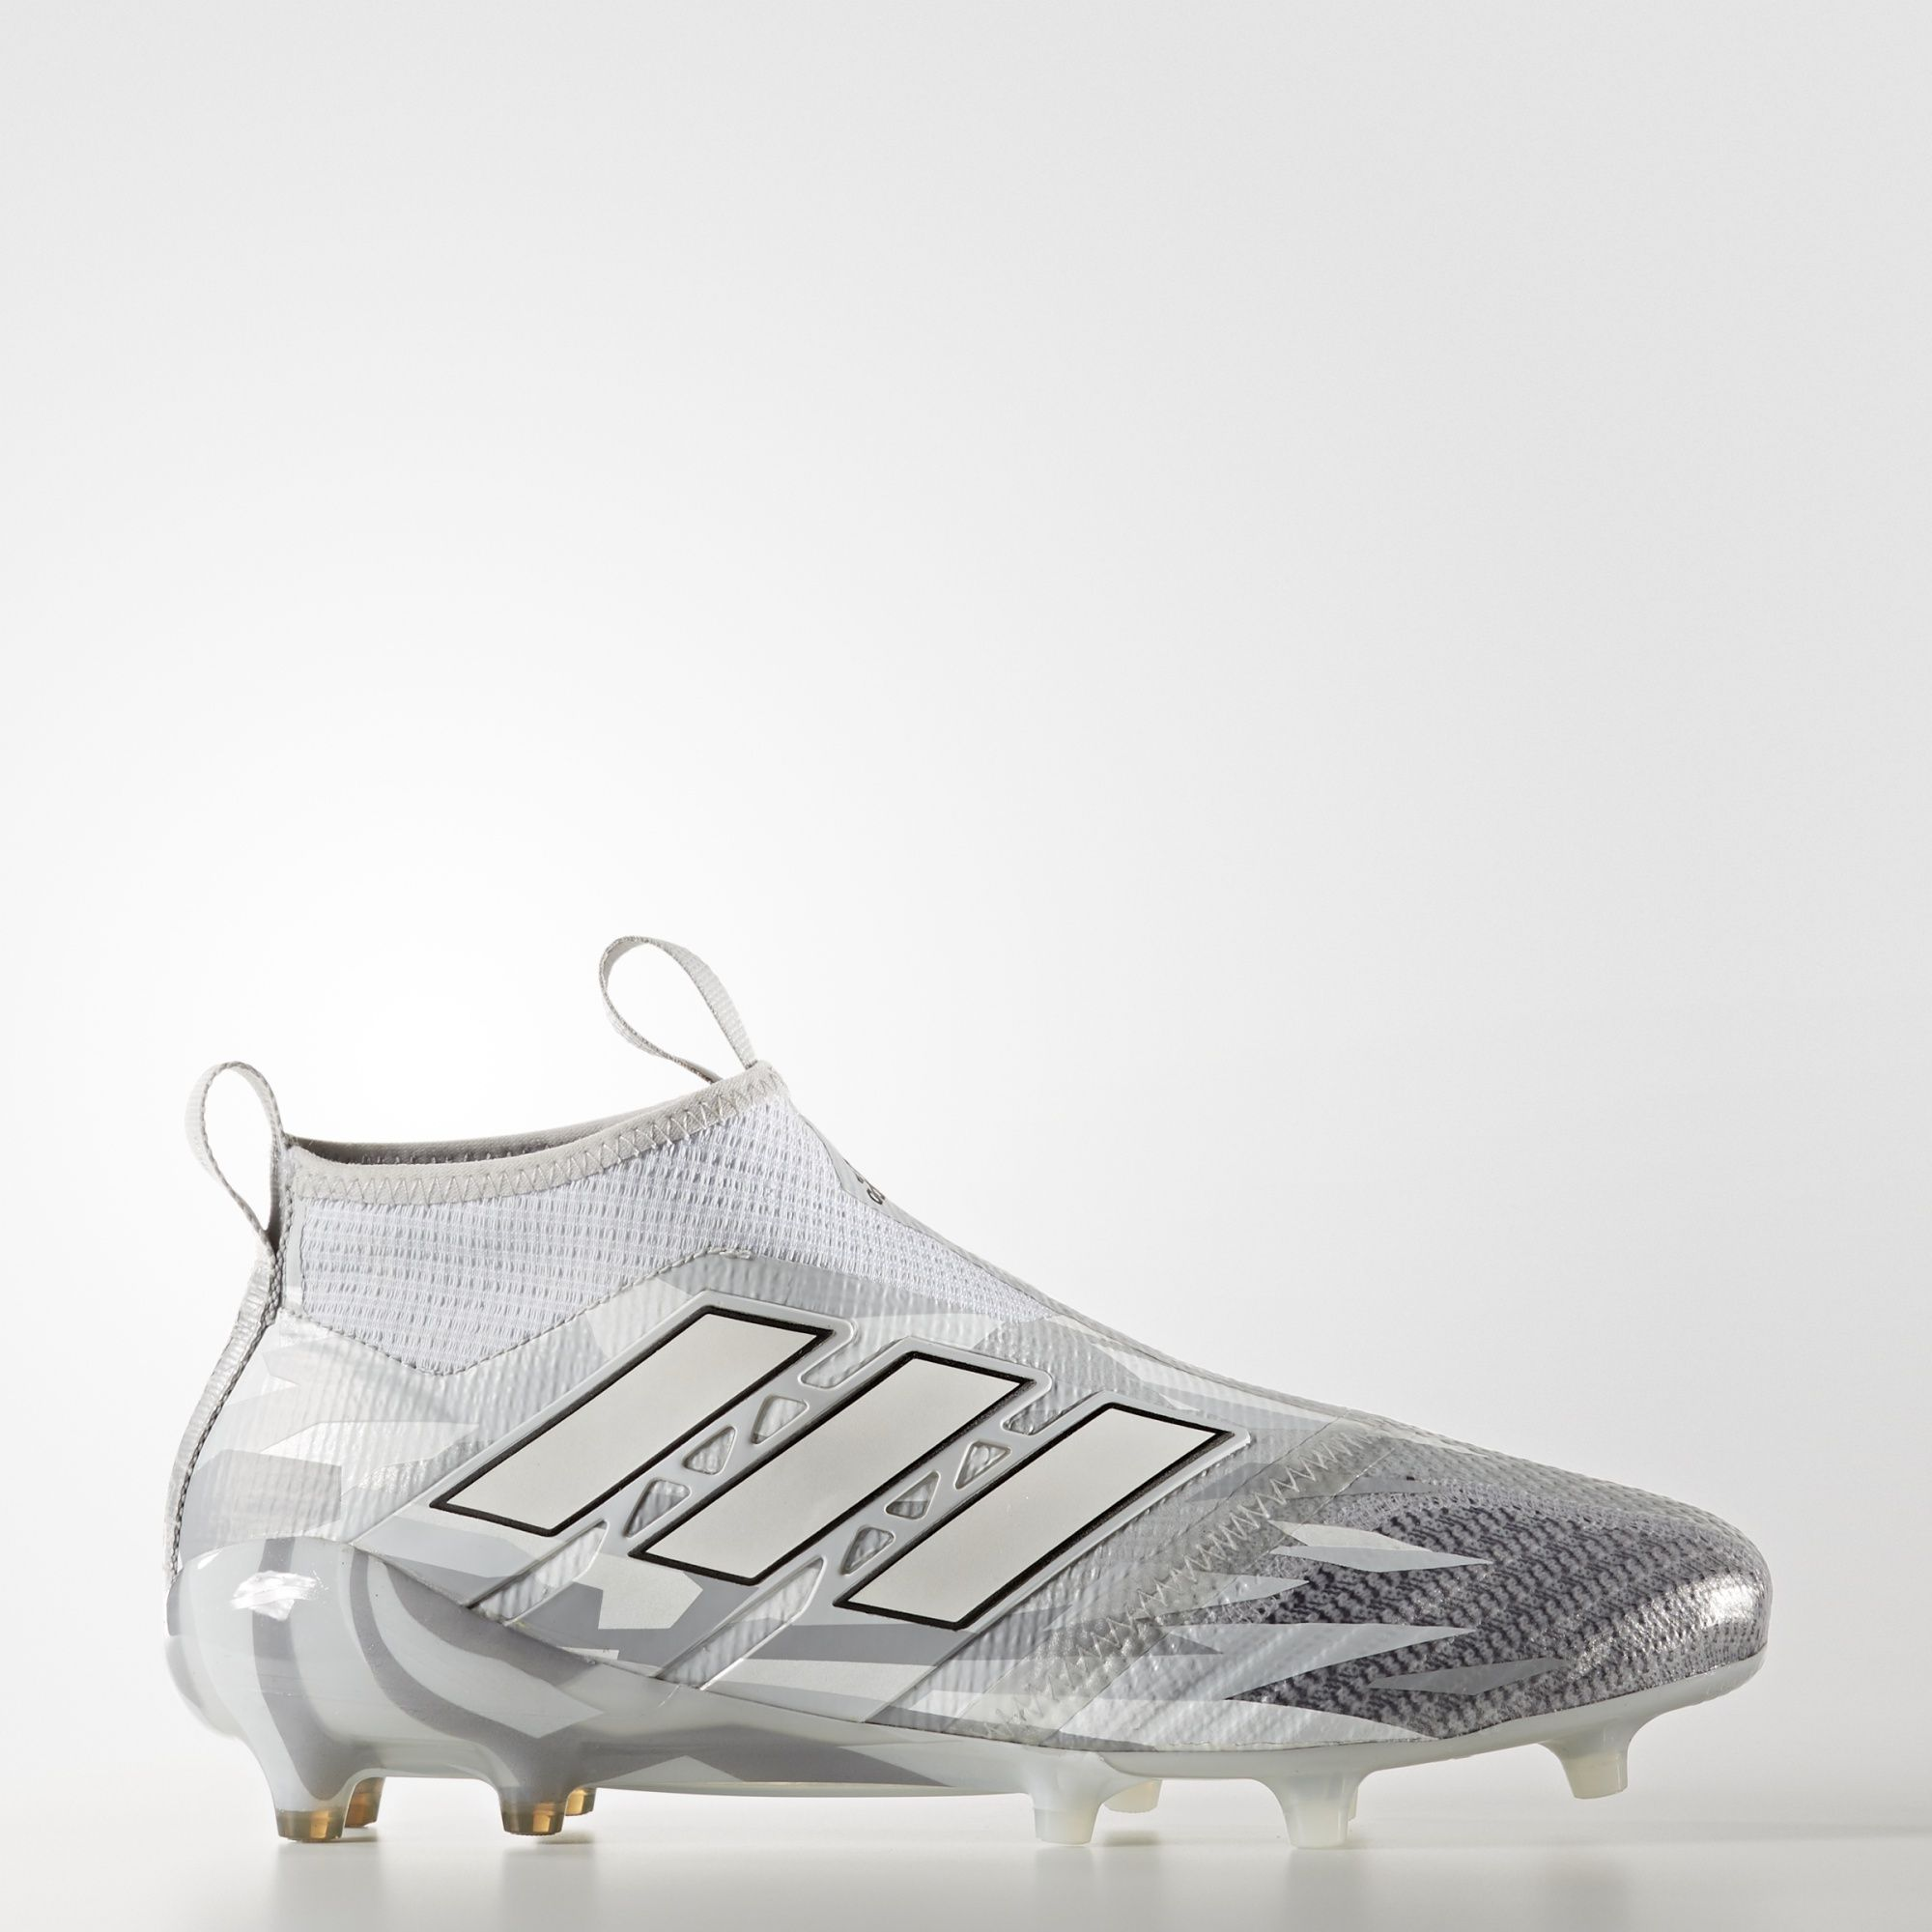 adidas Grey - Ace - Boots | Adidas Online Shop | adidas UK